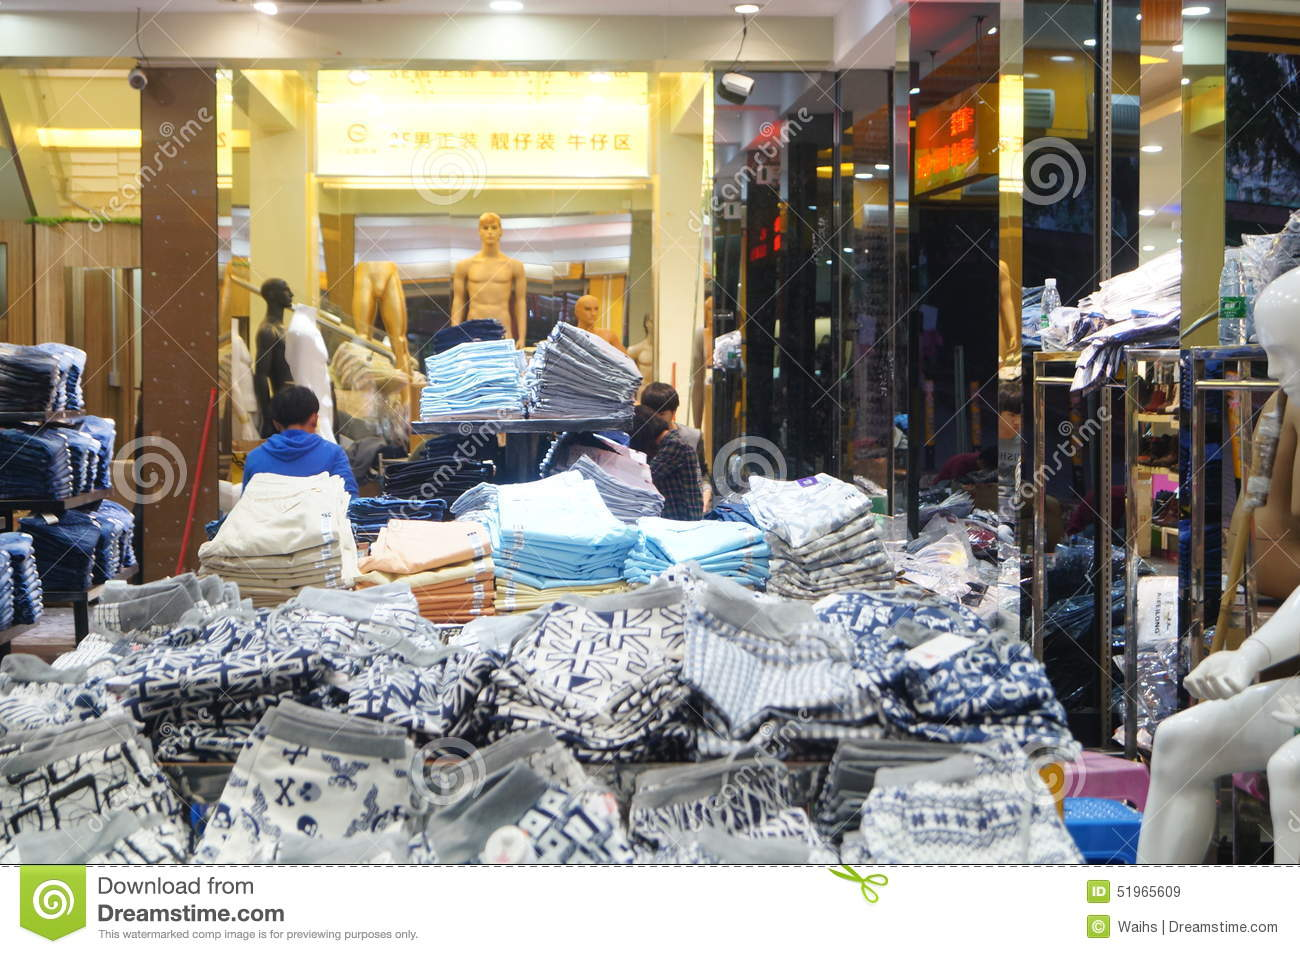 Construction clothing store Girls clothing stores